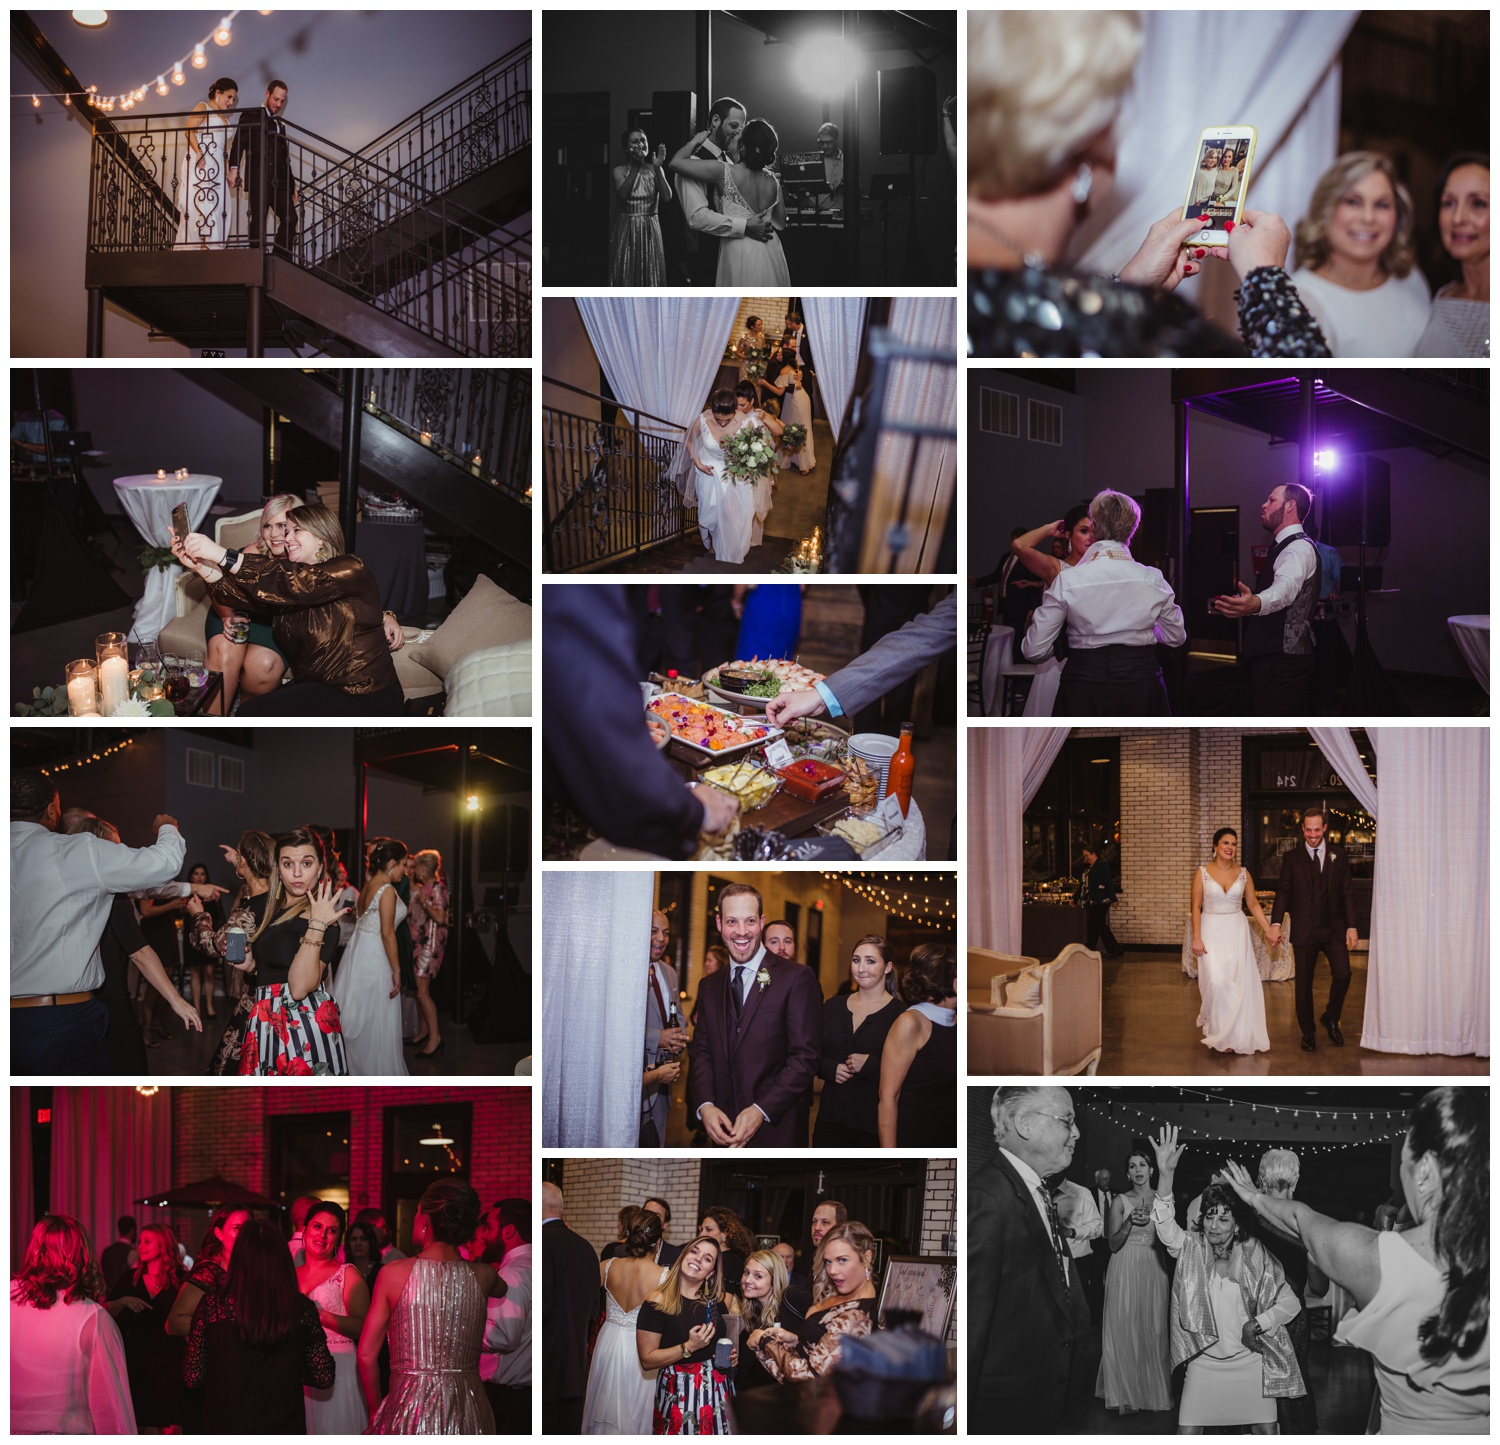 The bride and groom dance with their family and guests during their wedding reception in downtown Raleigh, photos by Rose Trail Images.